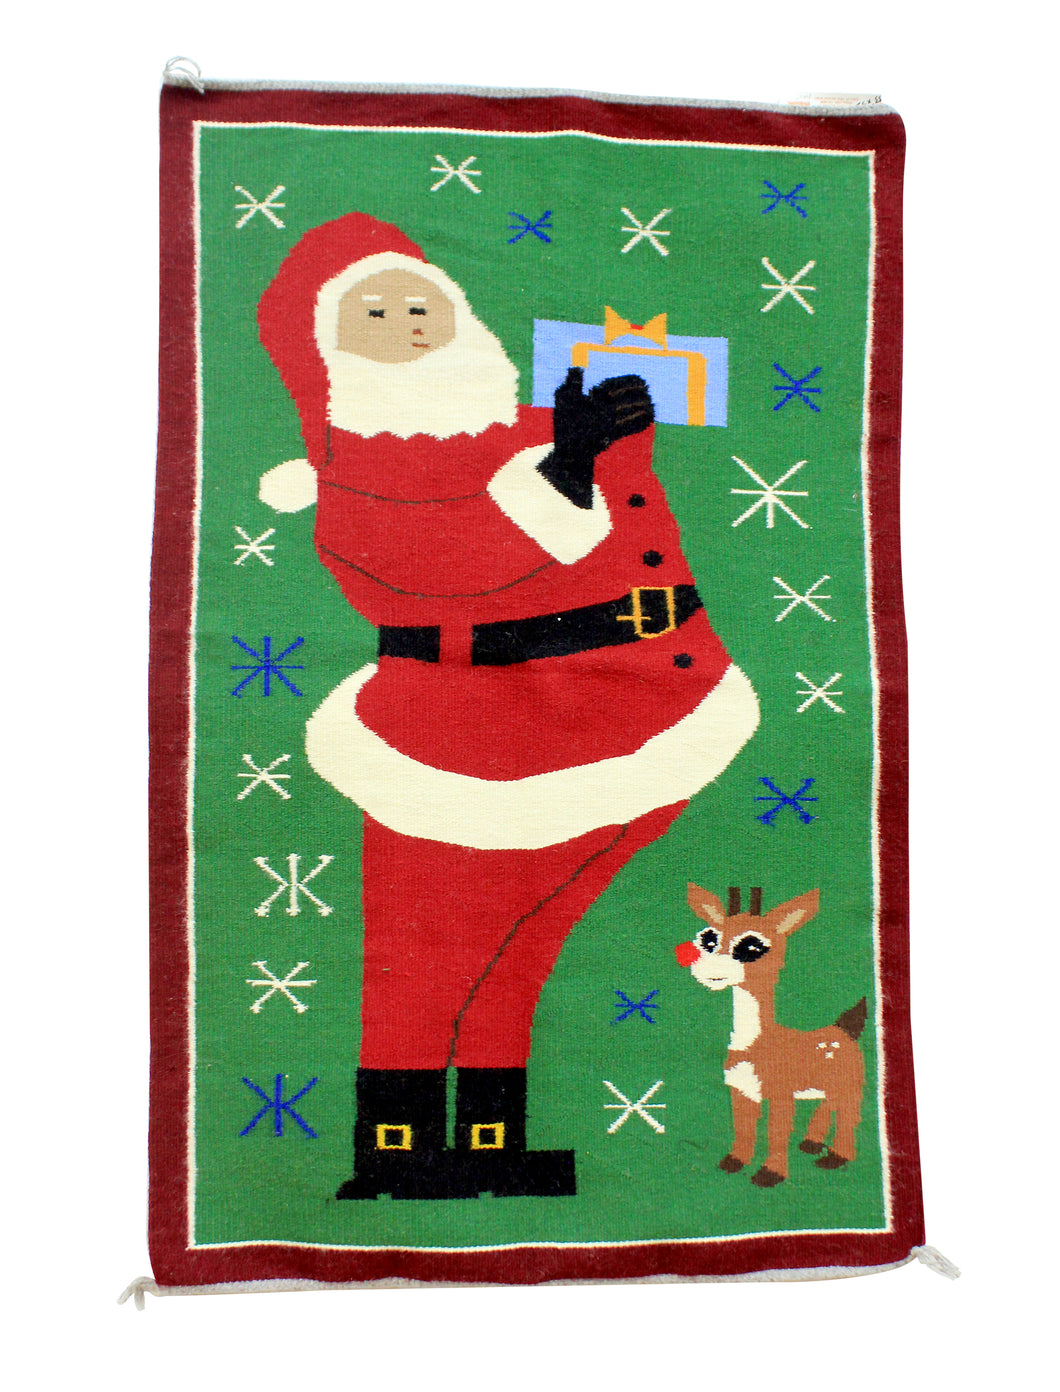 Wenora Joe, Christmas Pictorial, Rug, Navajo, Handwoven, 48